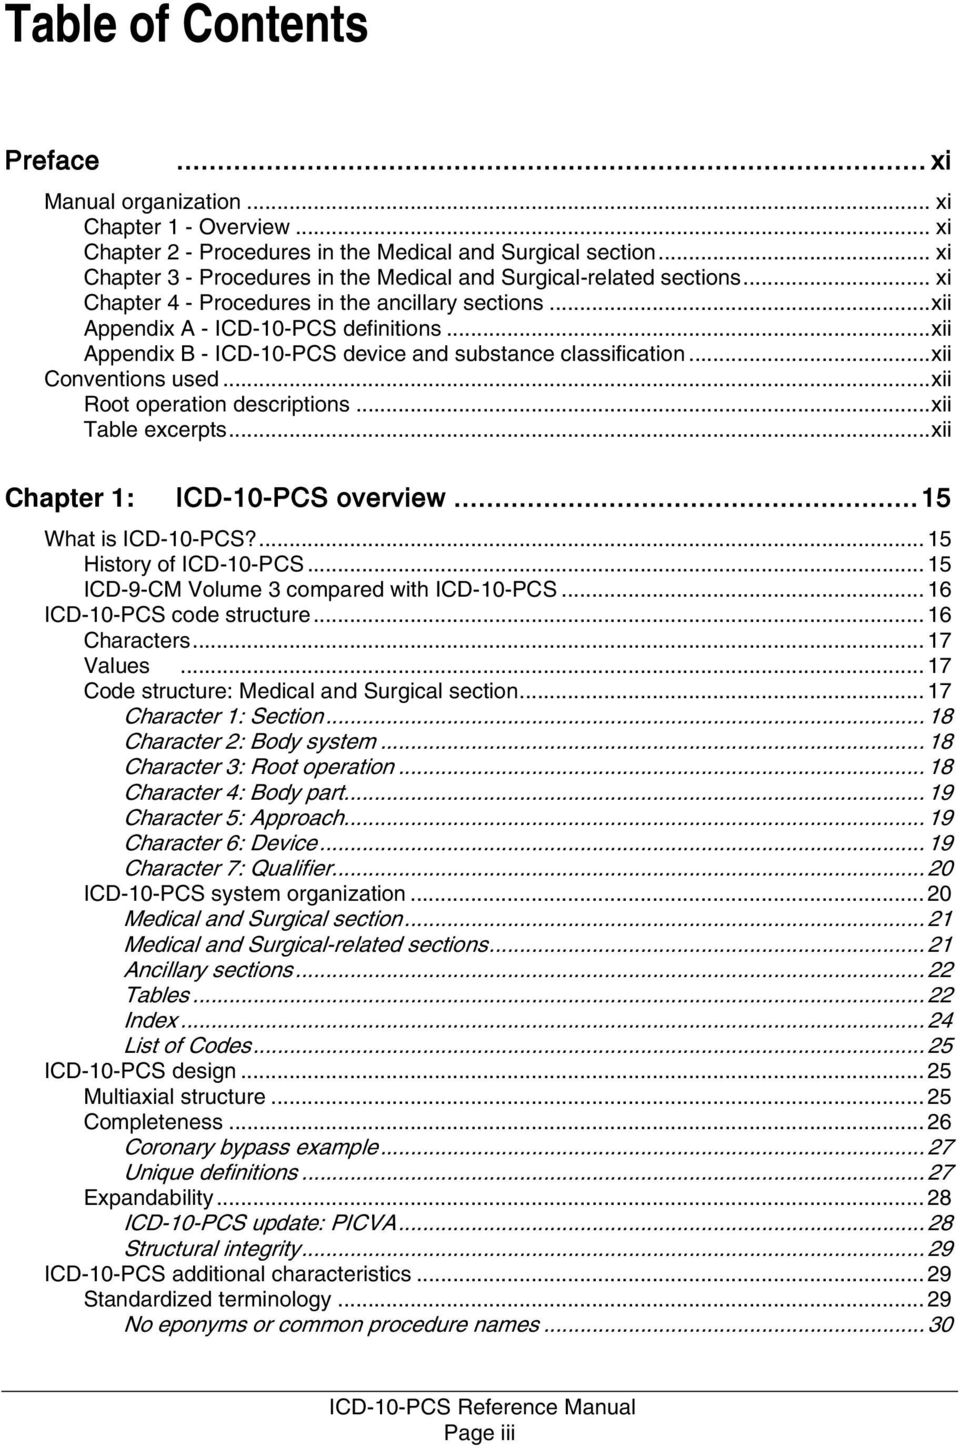 Icd 10 Pcs Reference Manual Pdf